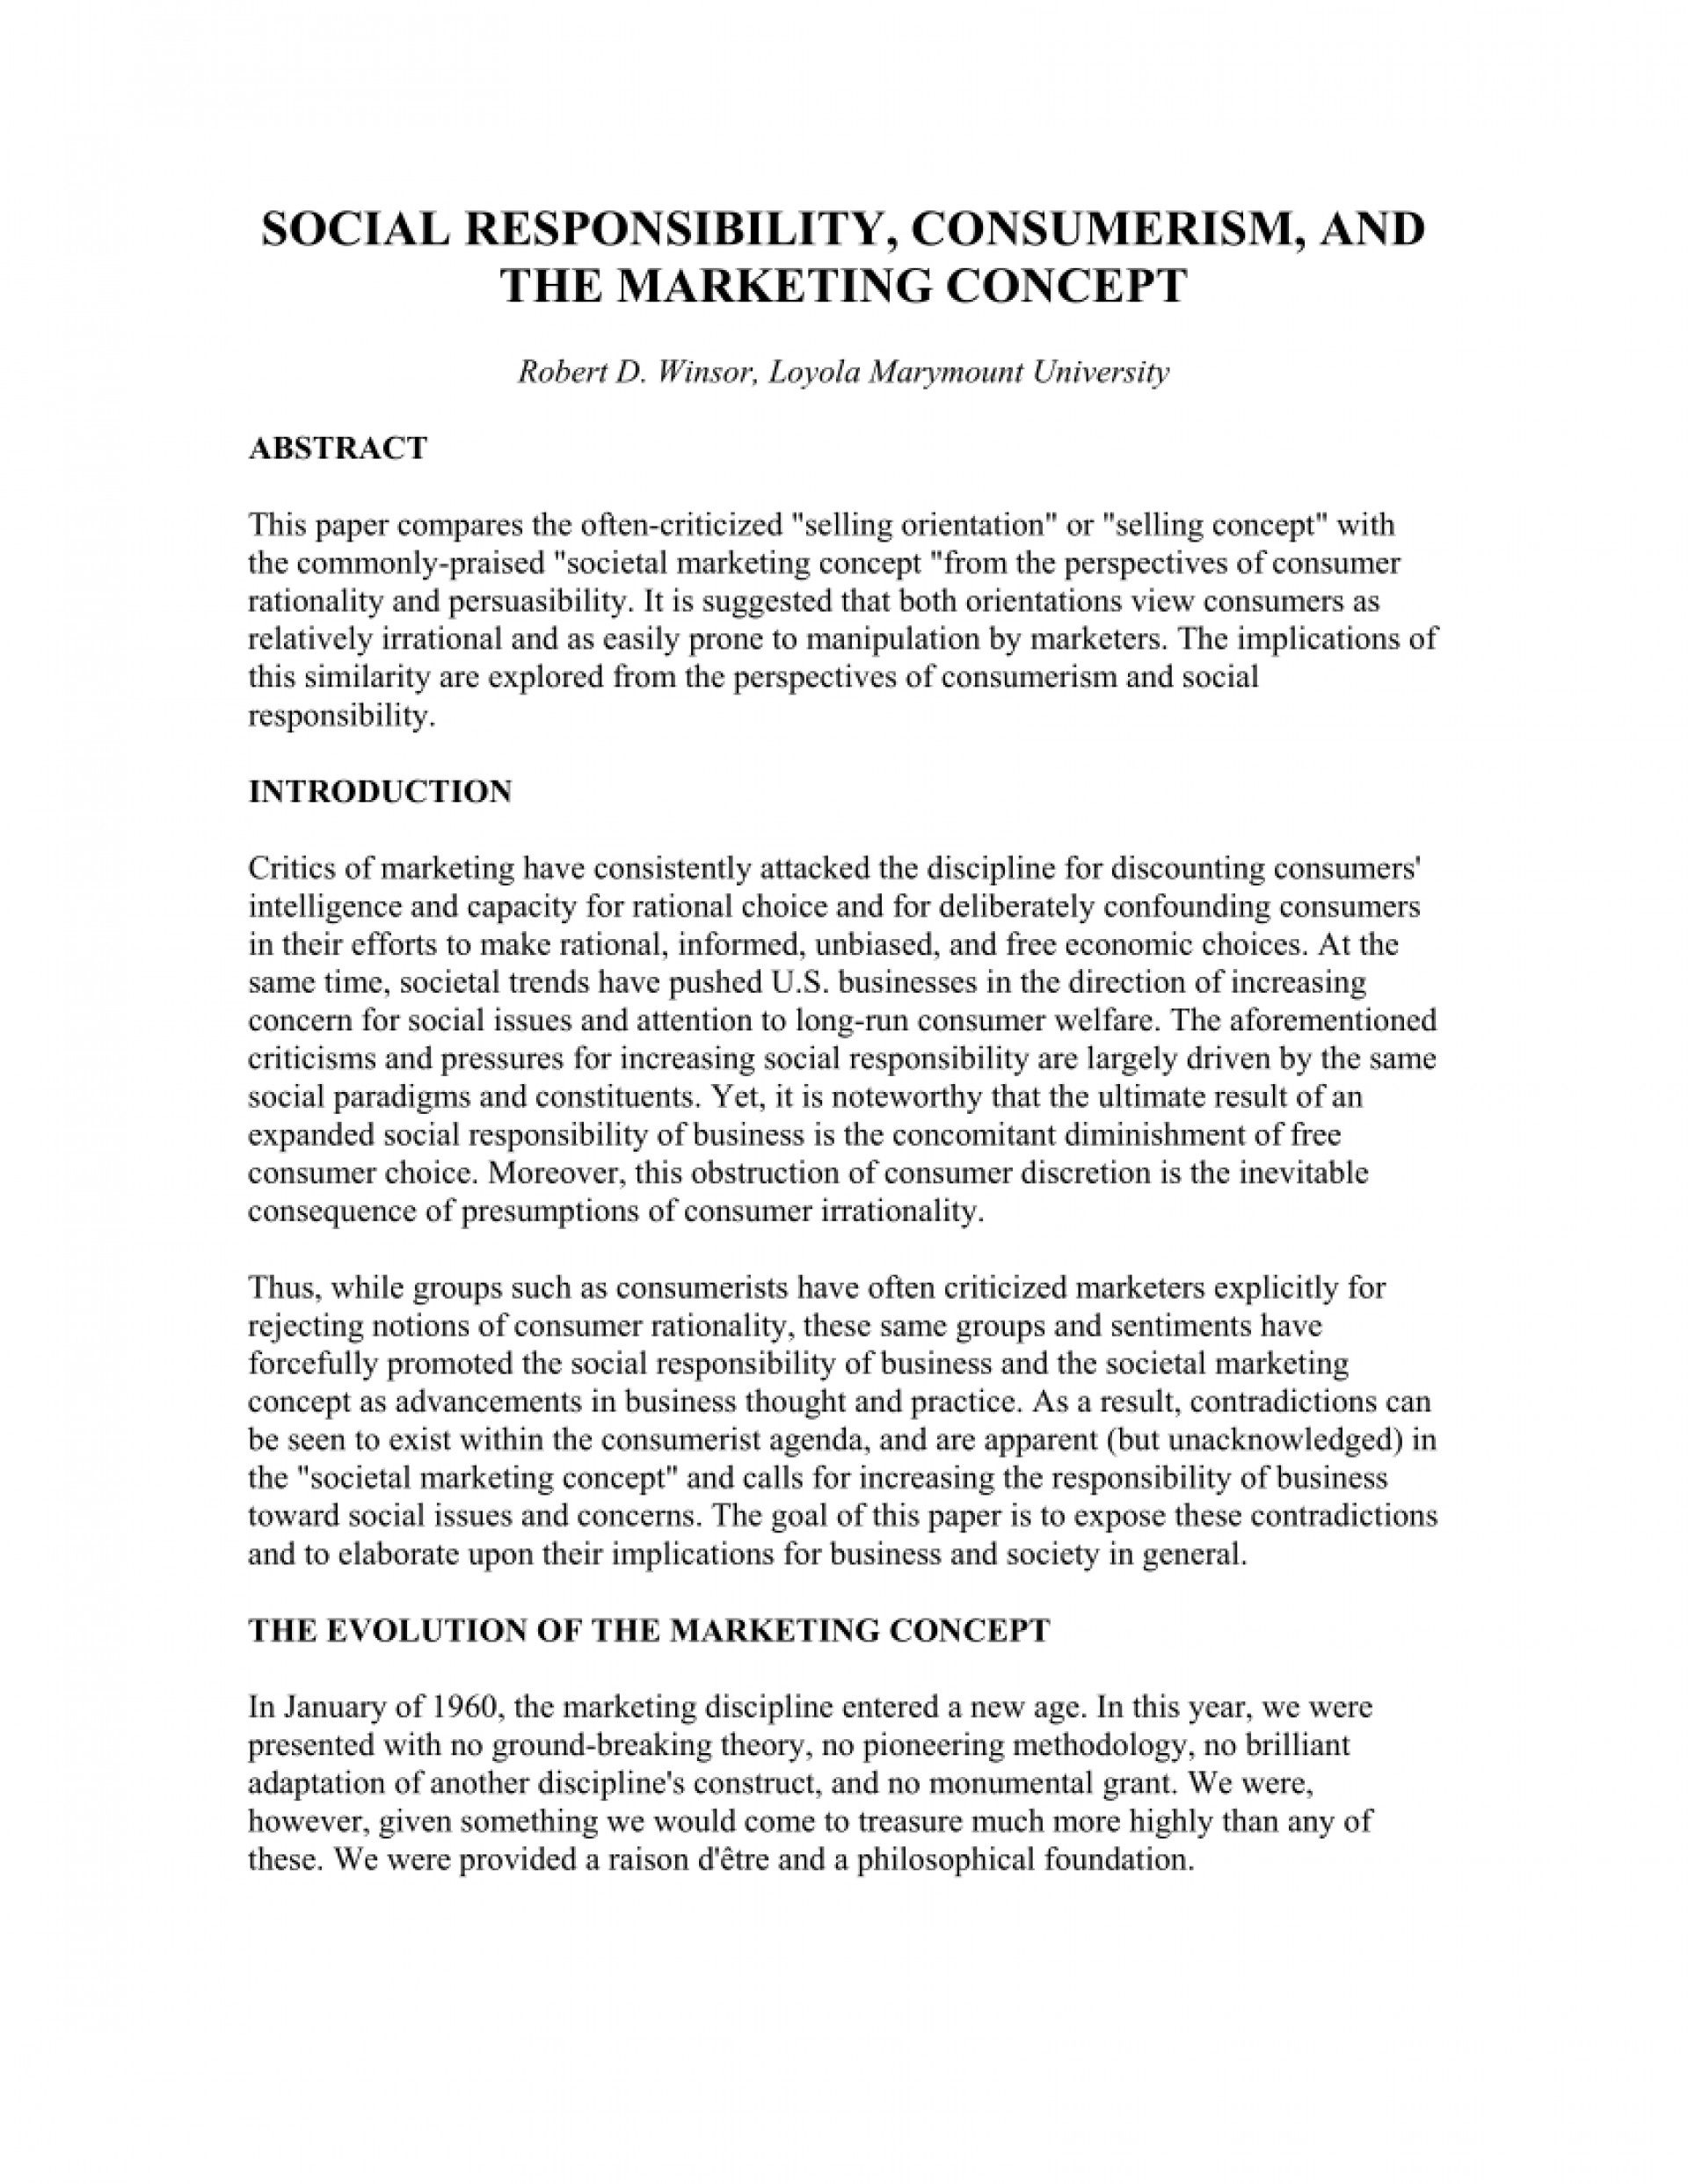 023 Research Paper Largepreview Best Topics For Unique Marketing 1920